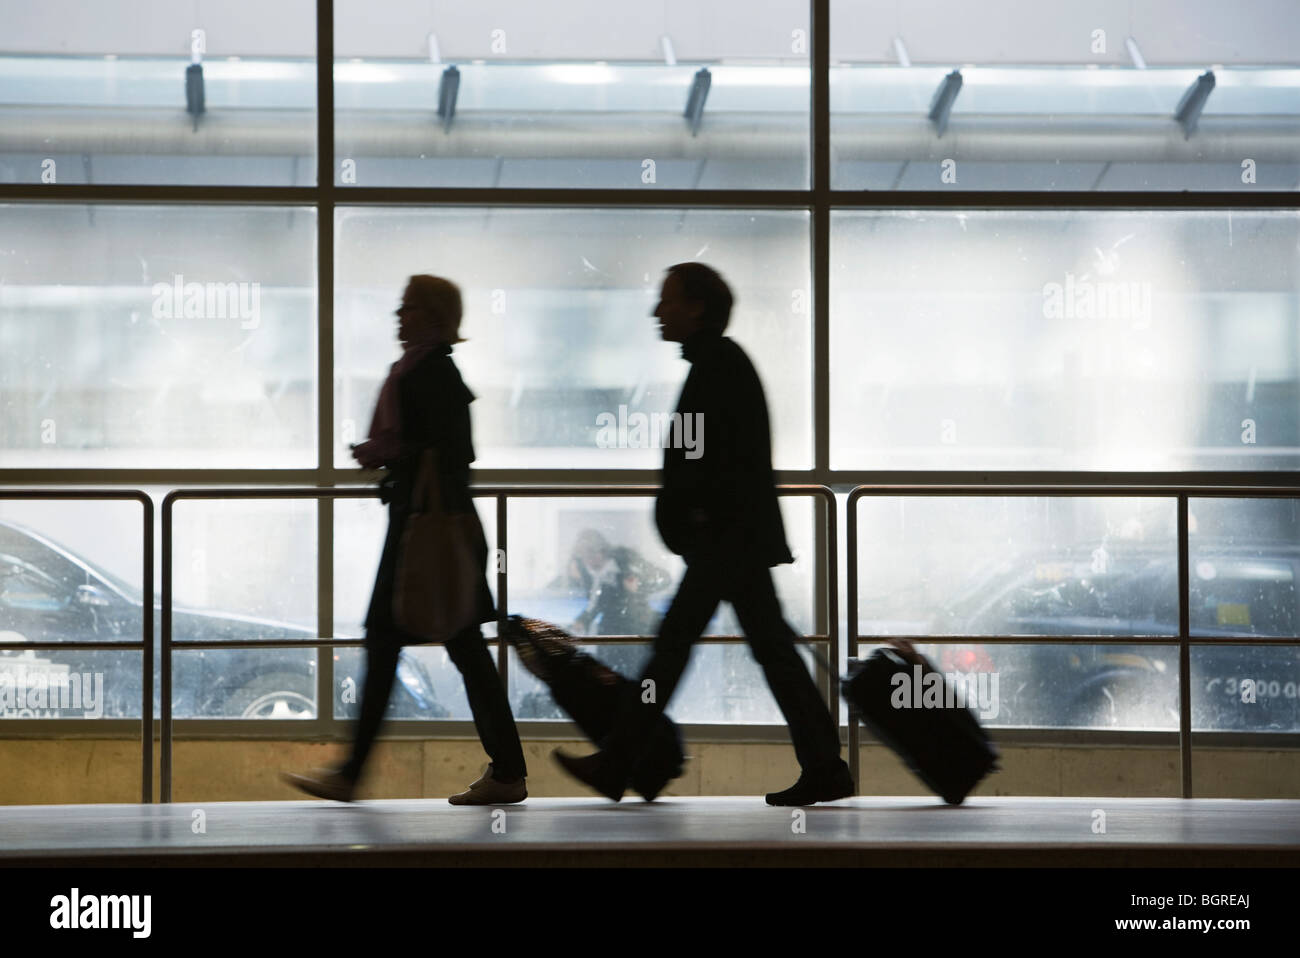 Two persons with luggage, Stockholm, Sweden. - Stock Image